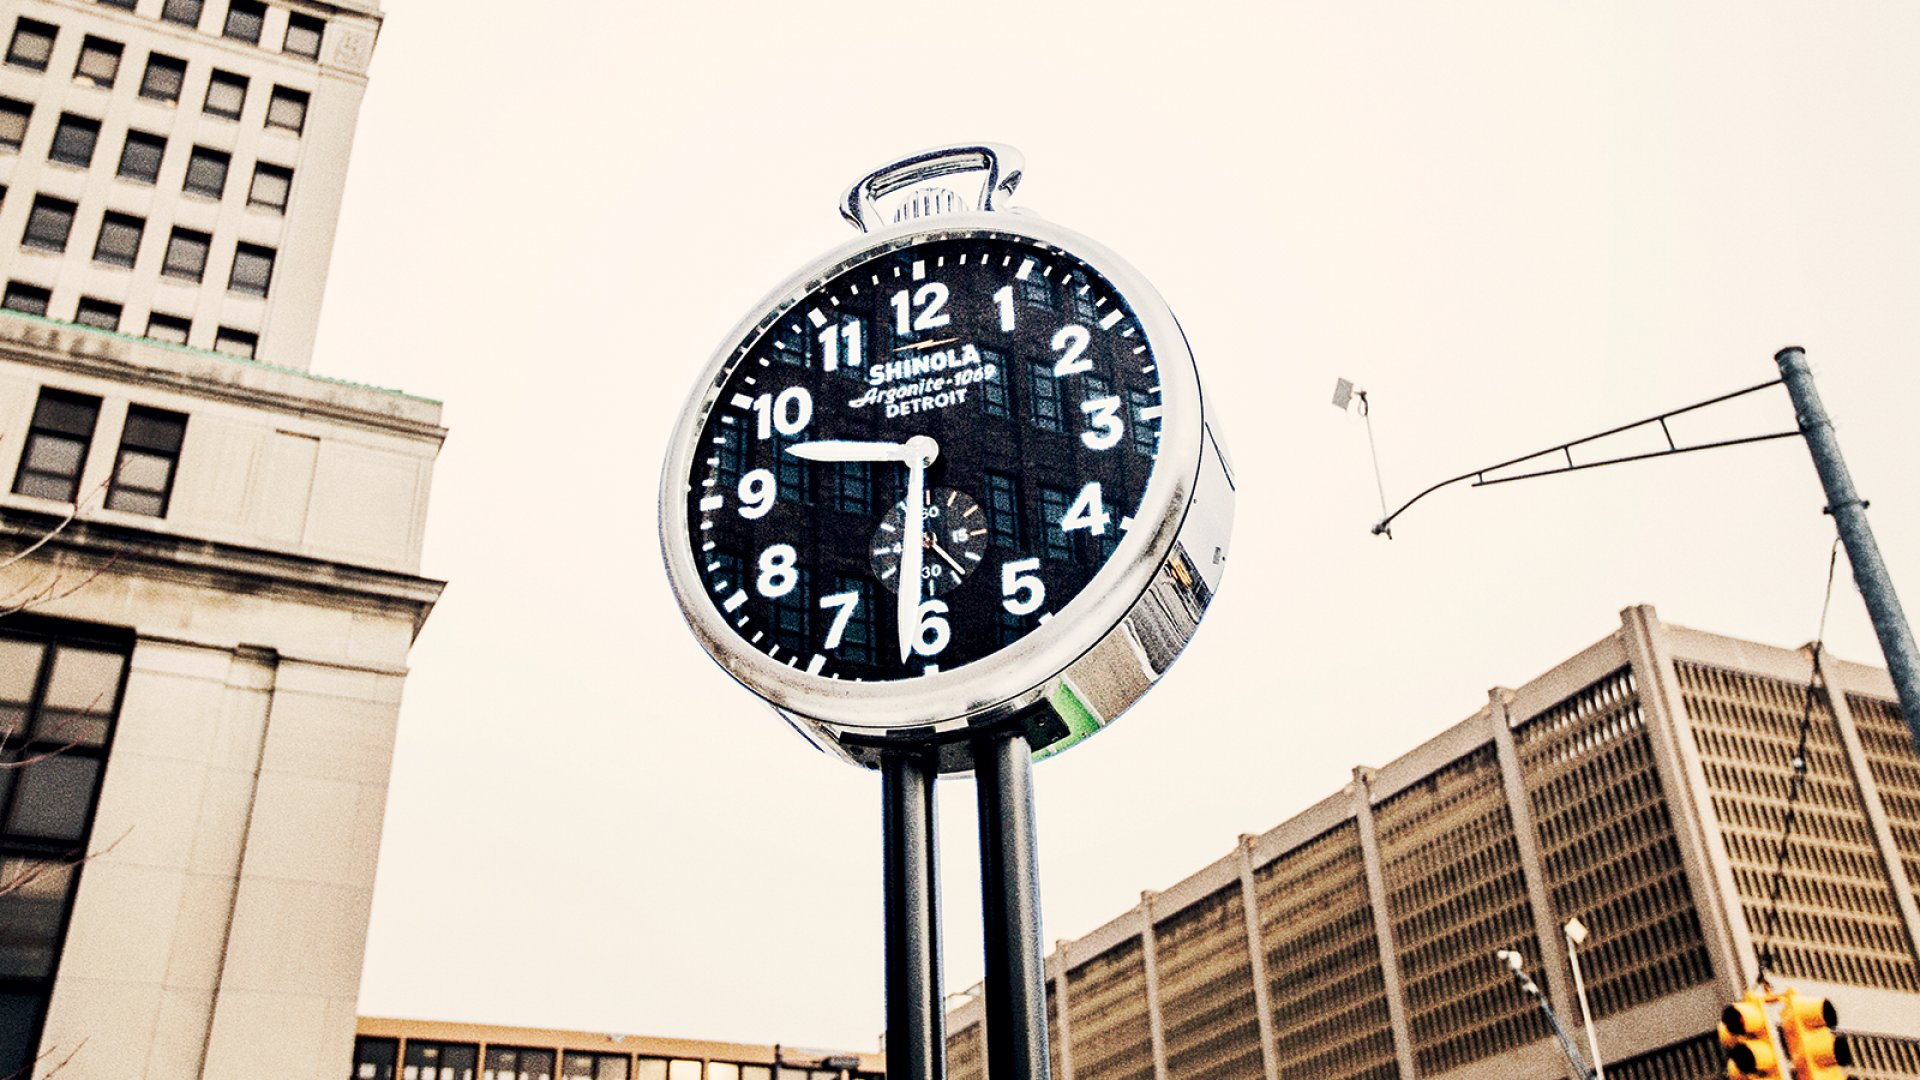 With its branded clock now part of Detroit's cityscape, Shinola has become inseparable from the Rust Belt city's fight for survival.